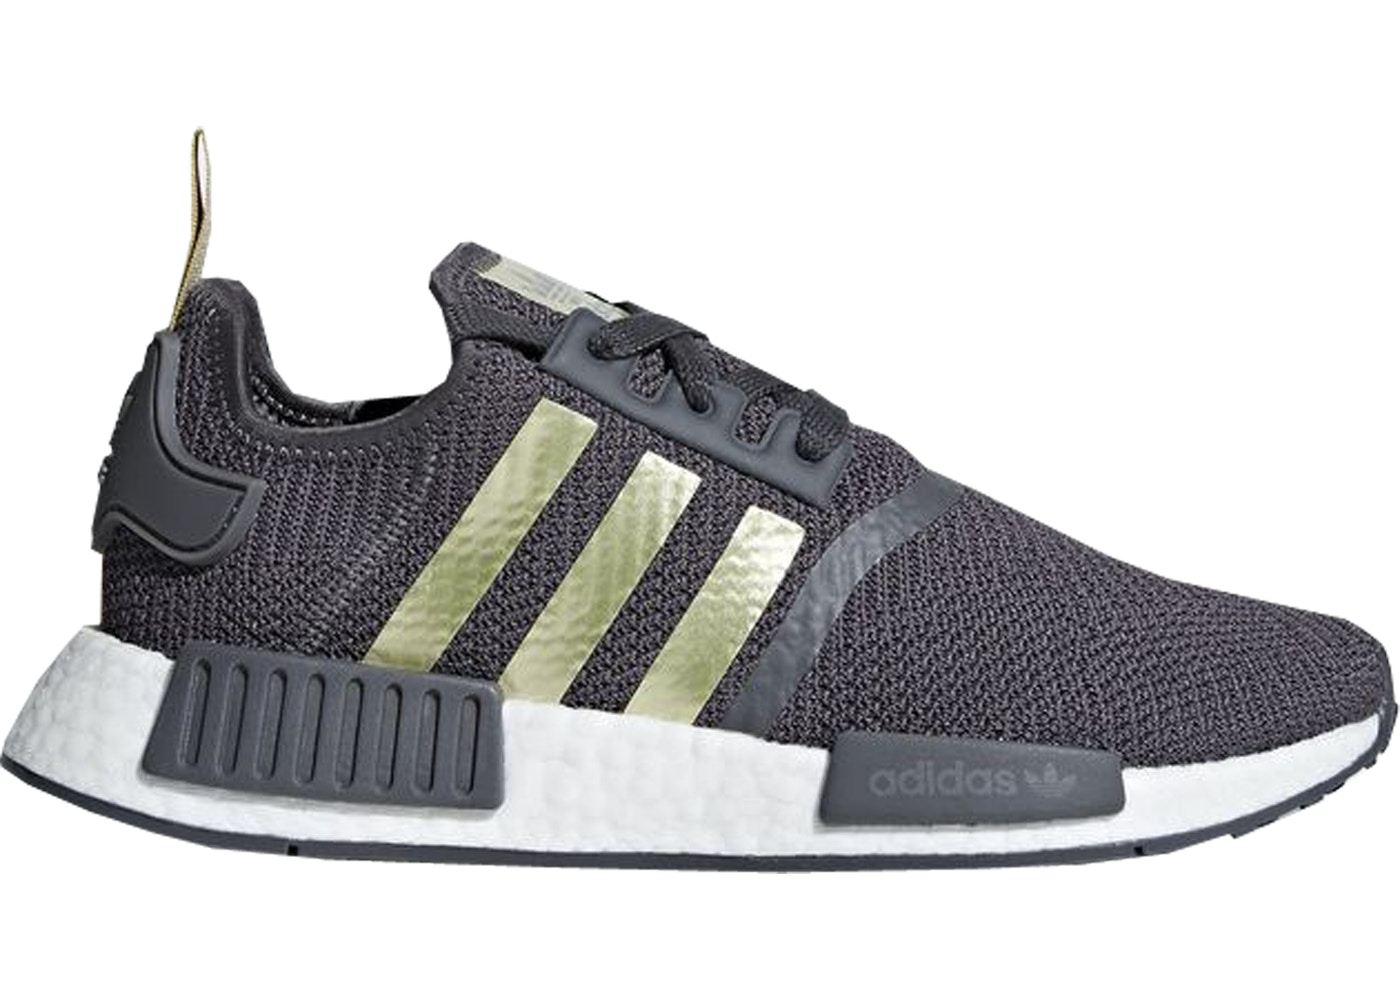 new product ed4d0 92f4d adidas NMD R1 Shoes - Lowest Ask